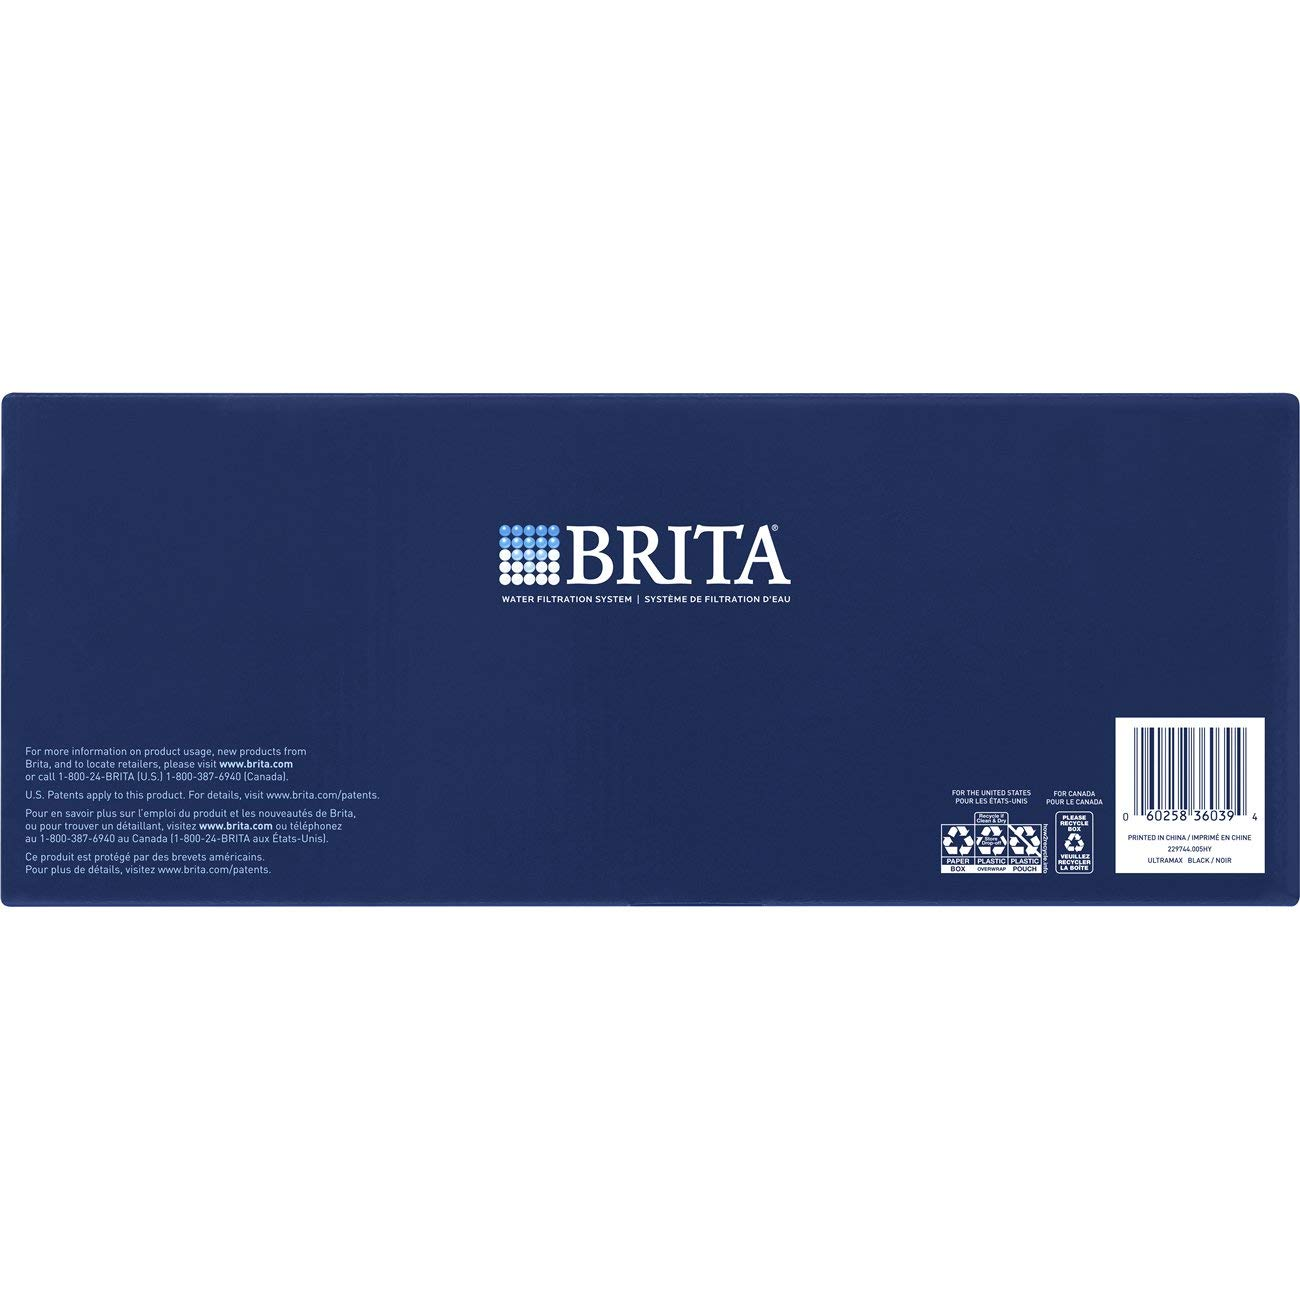 Brita Extra Large 18 Cup UltraMax Water Dispenser and Filter - BPA Free - Black by Brita (Image #10)